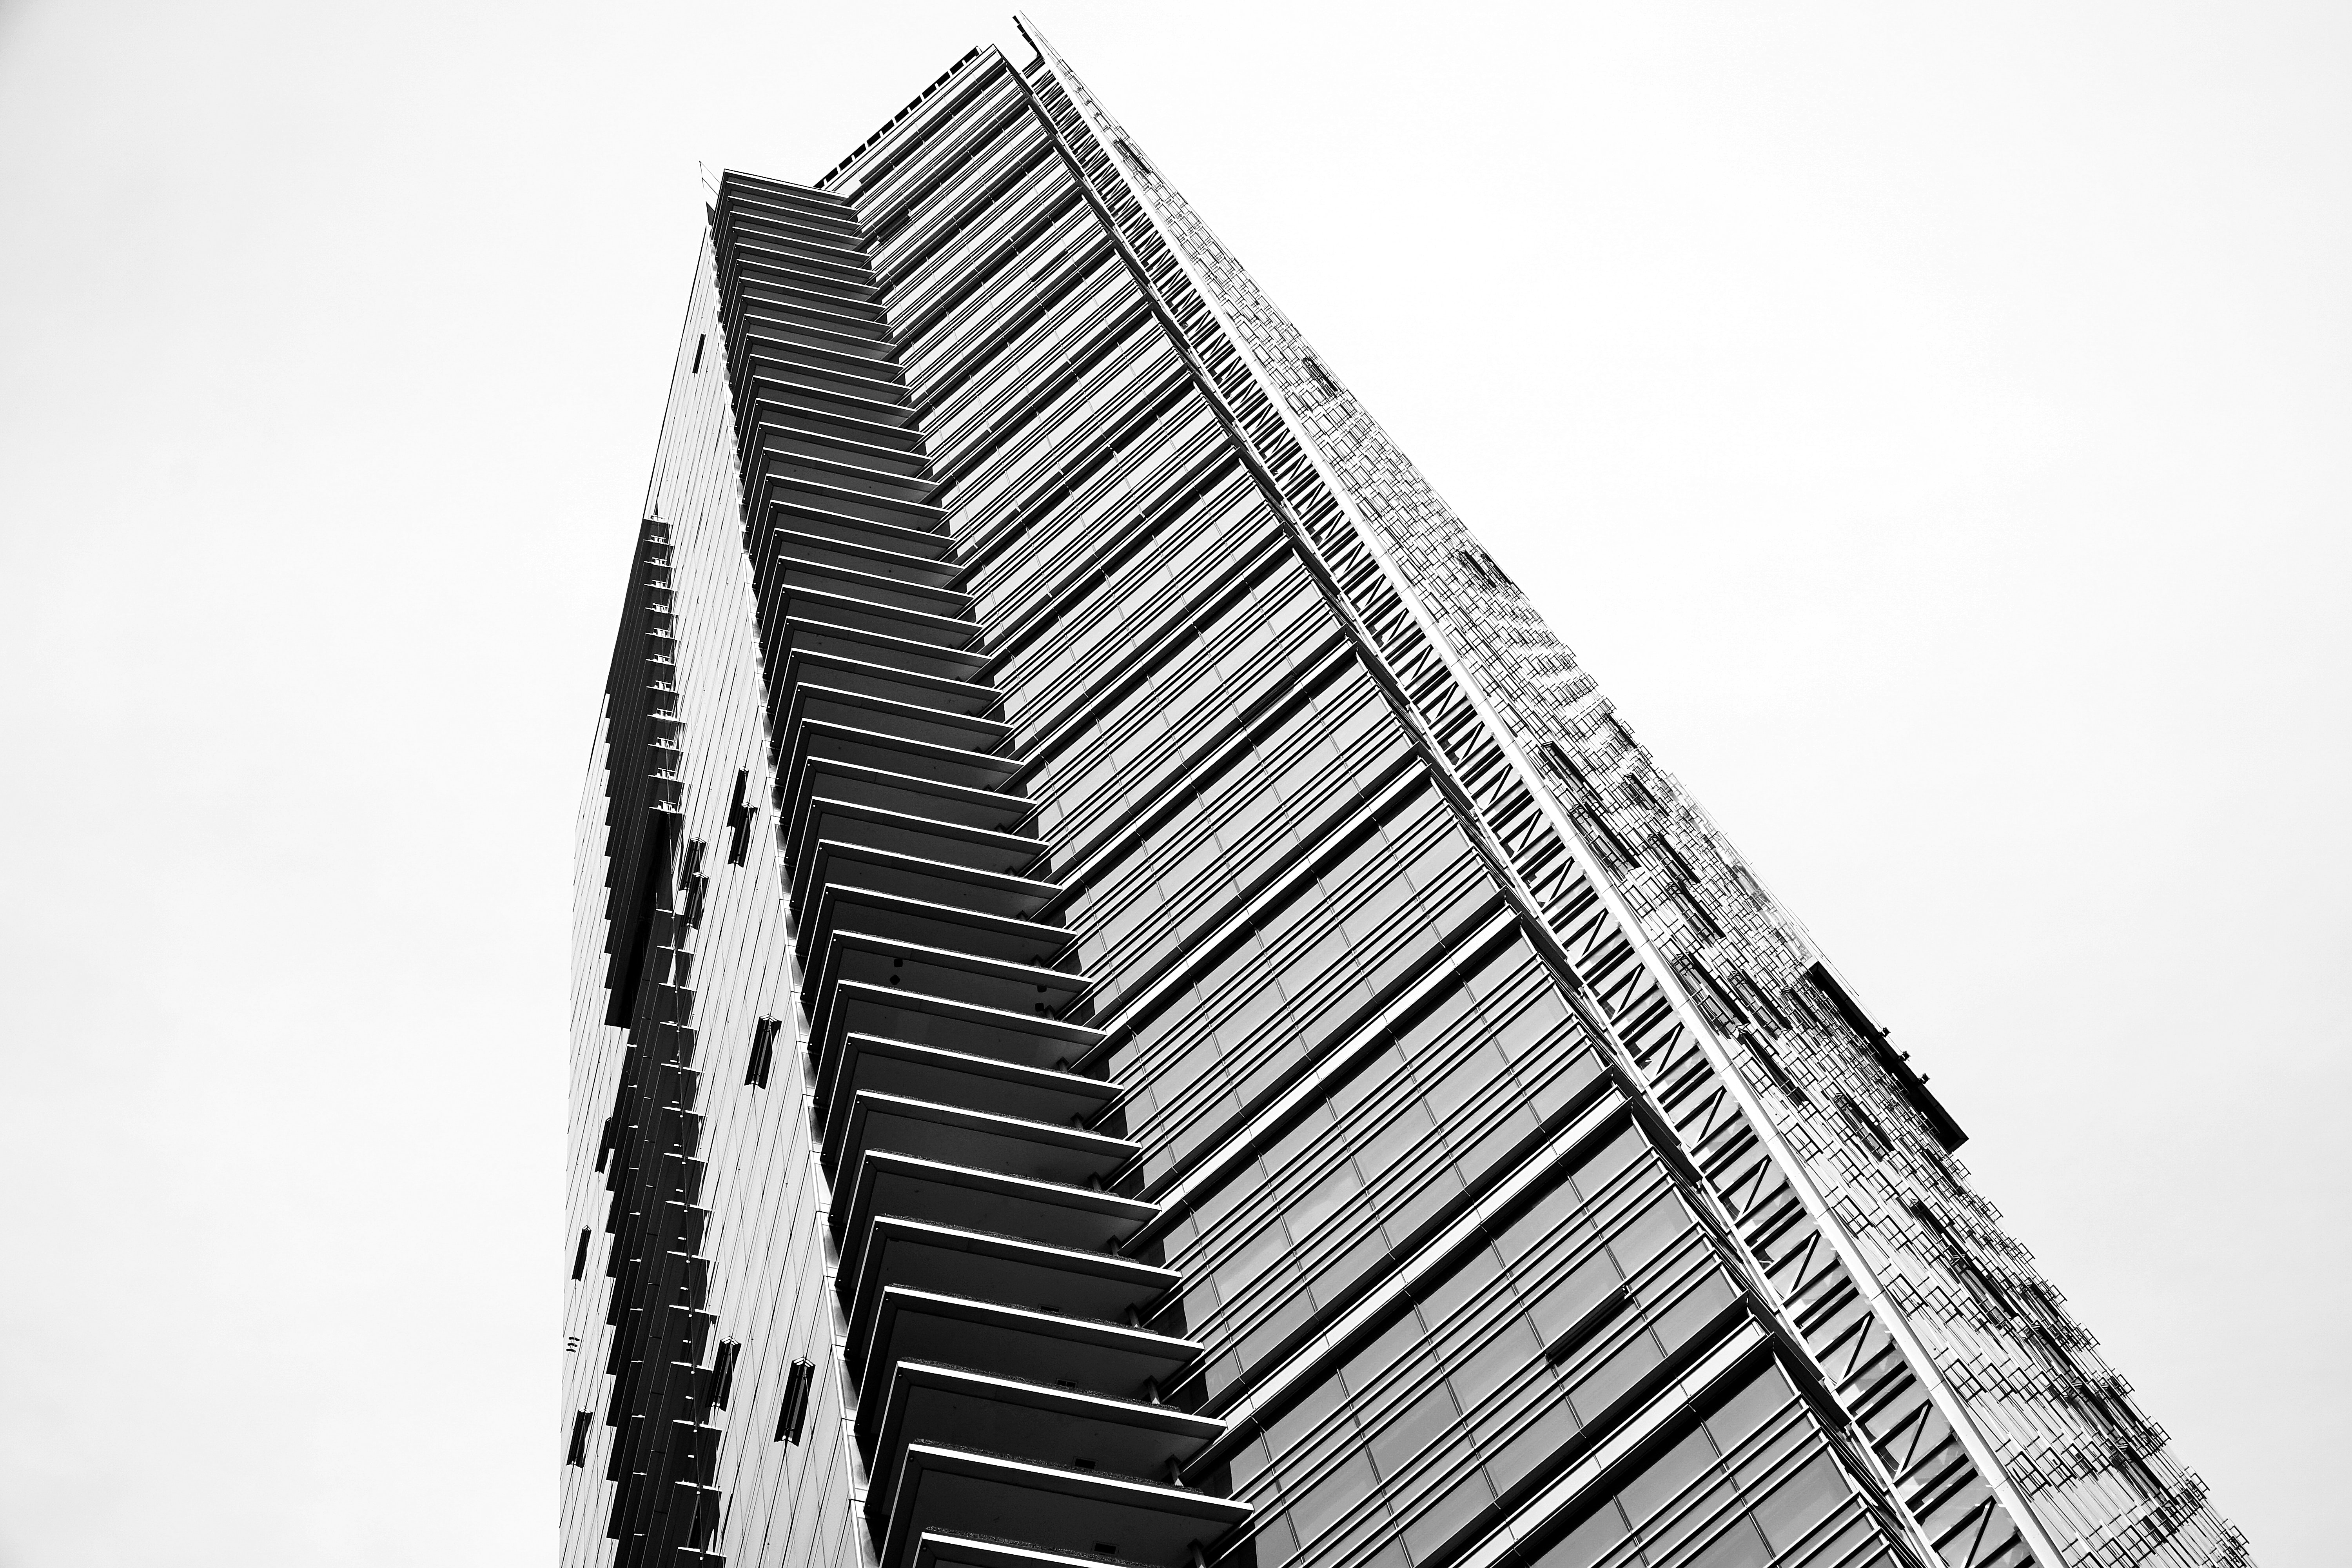 low angle photograph of building